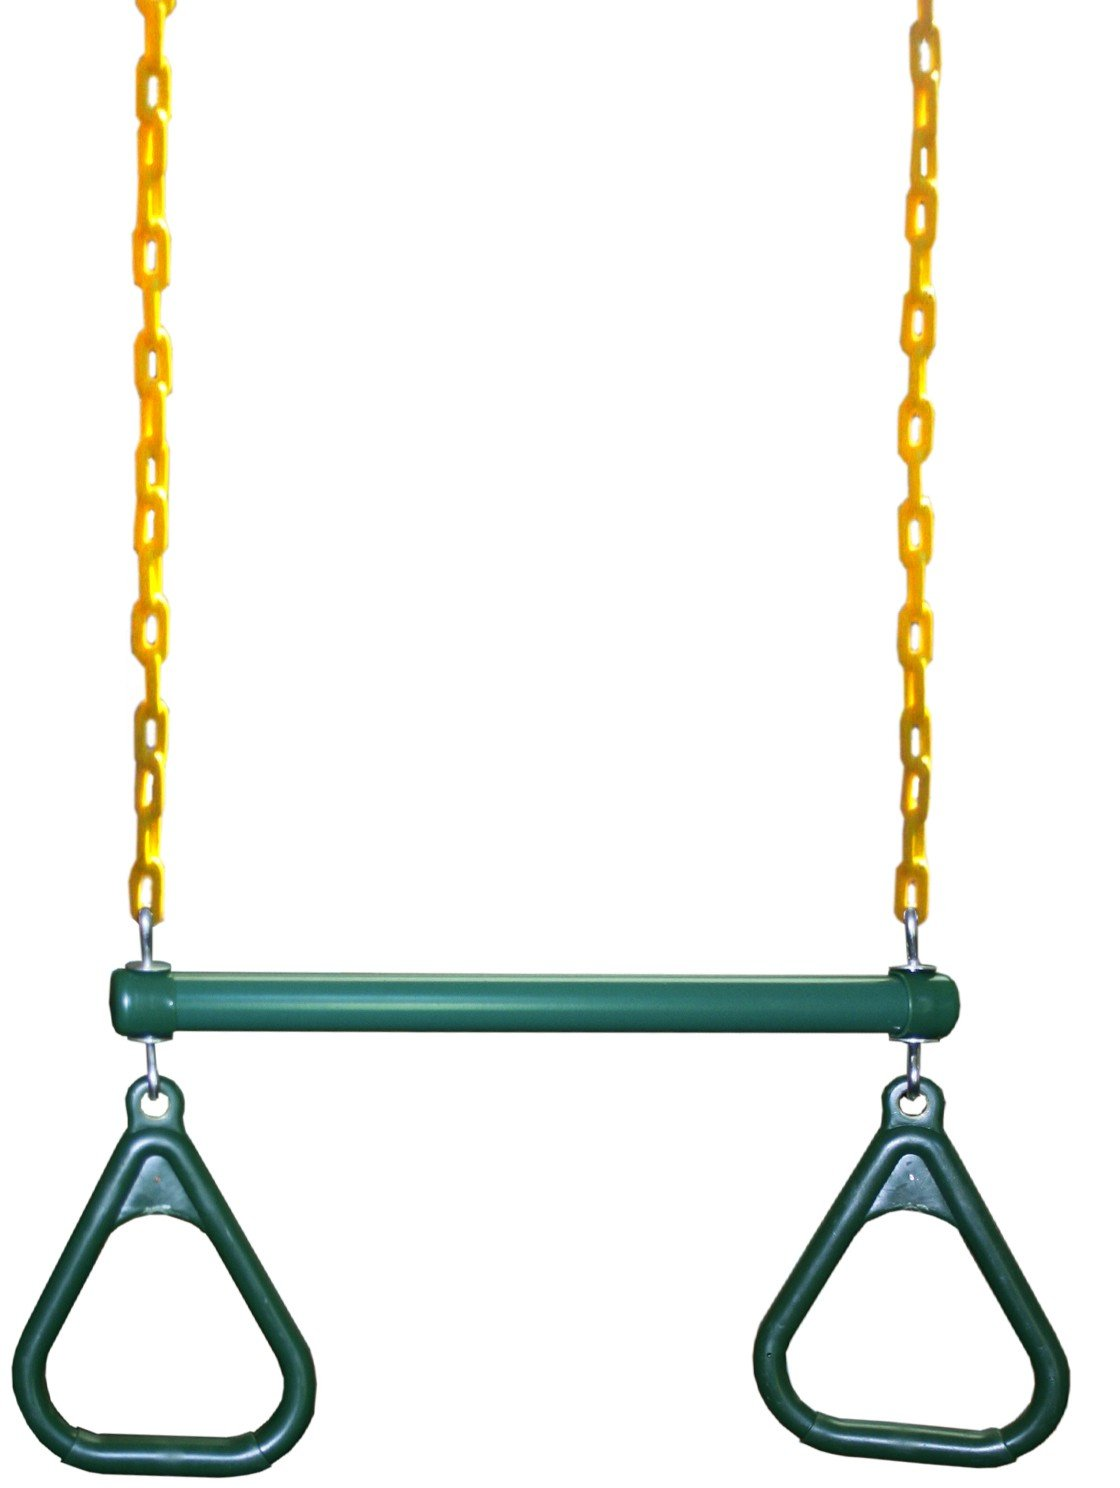 Eastern Jungle Gym Heavy-Duty Ring Trapeze Bar Combo Swing,Large 20 Trapeze Bar with Coated Swing Chains 43 Long CRTCC